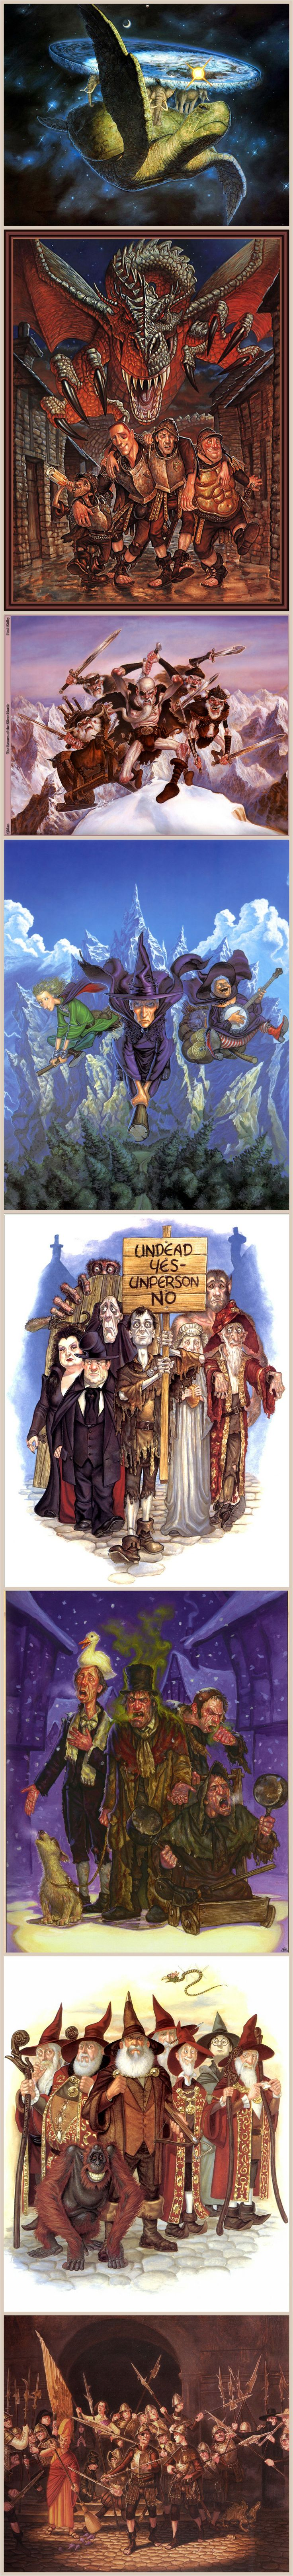 Discworld illustrations by Paul Kidby